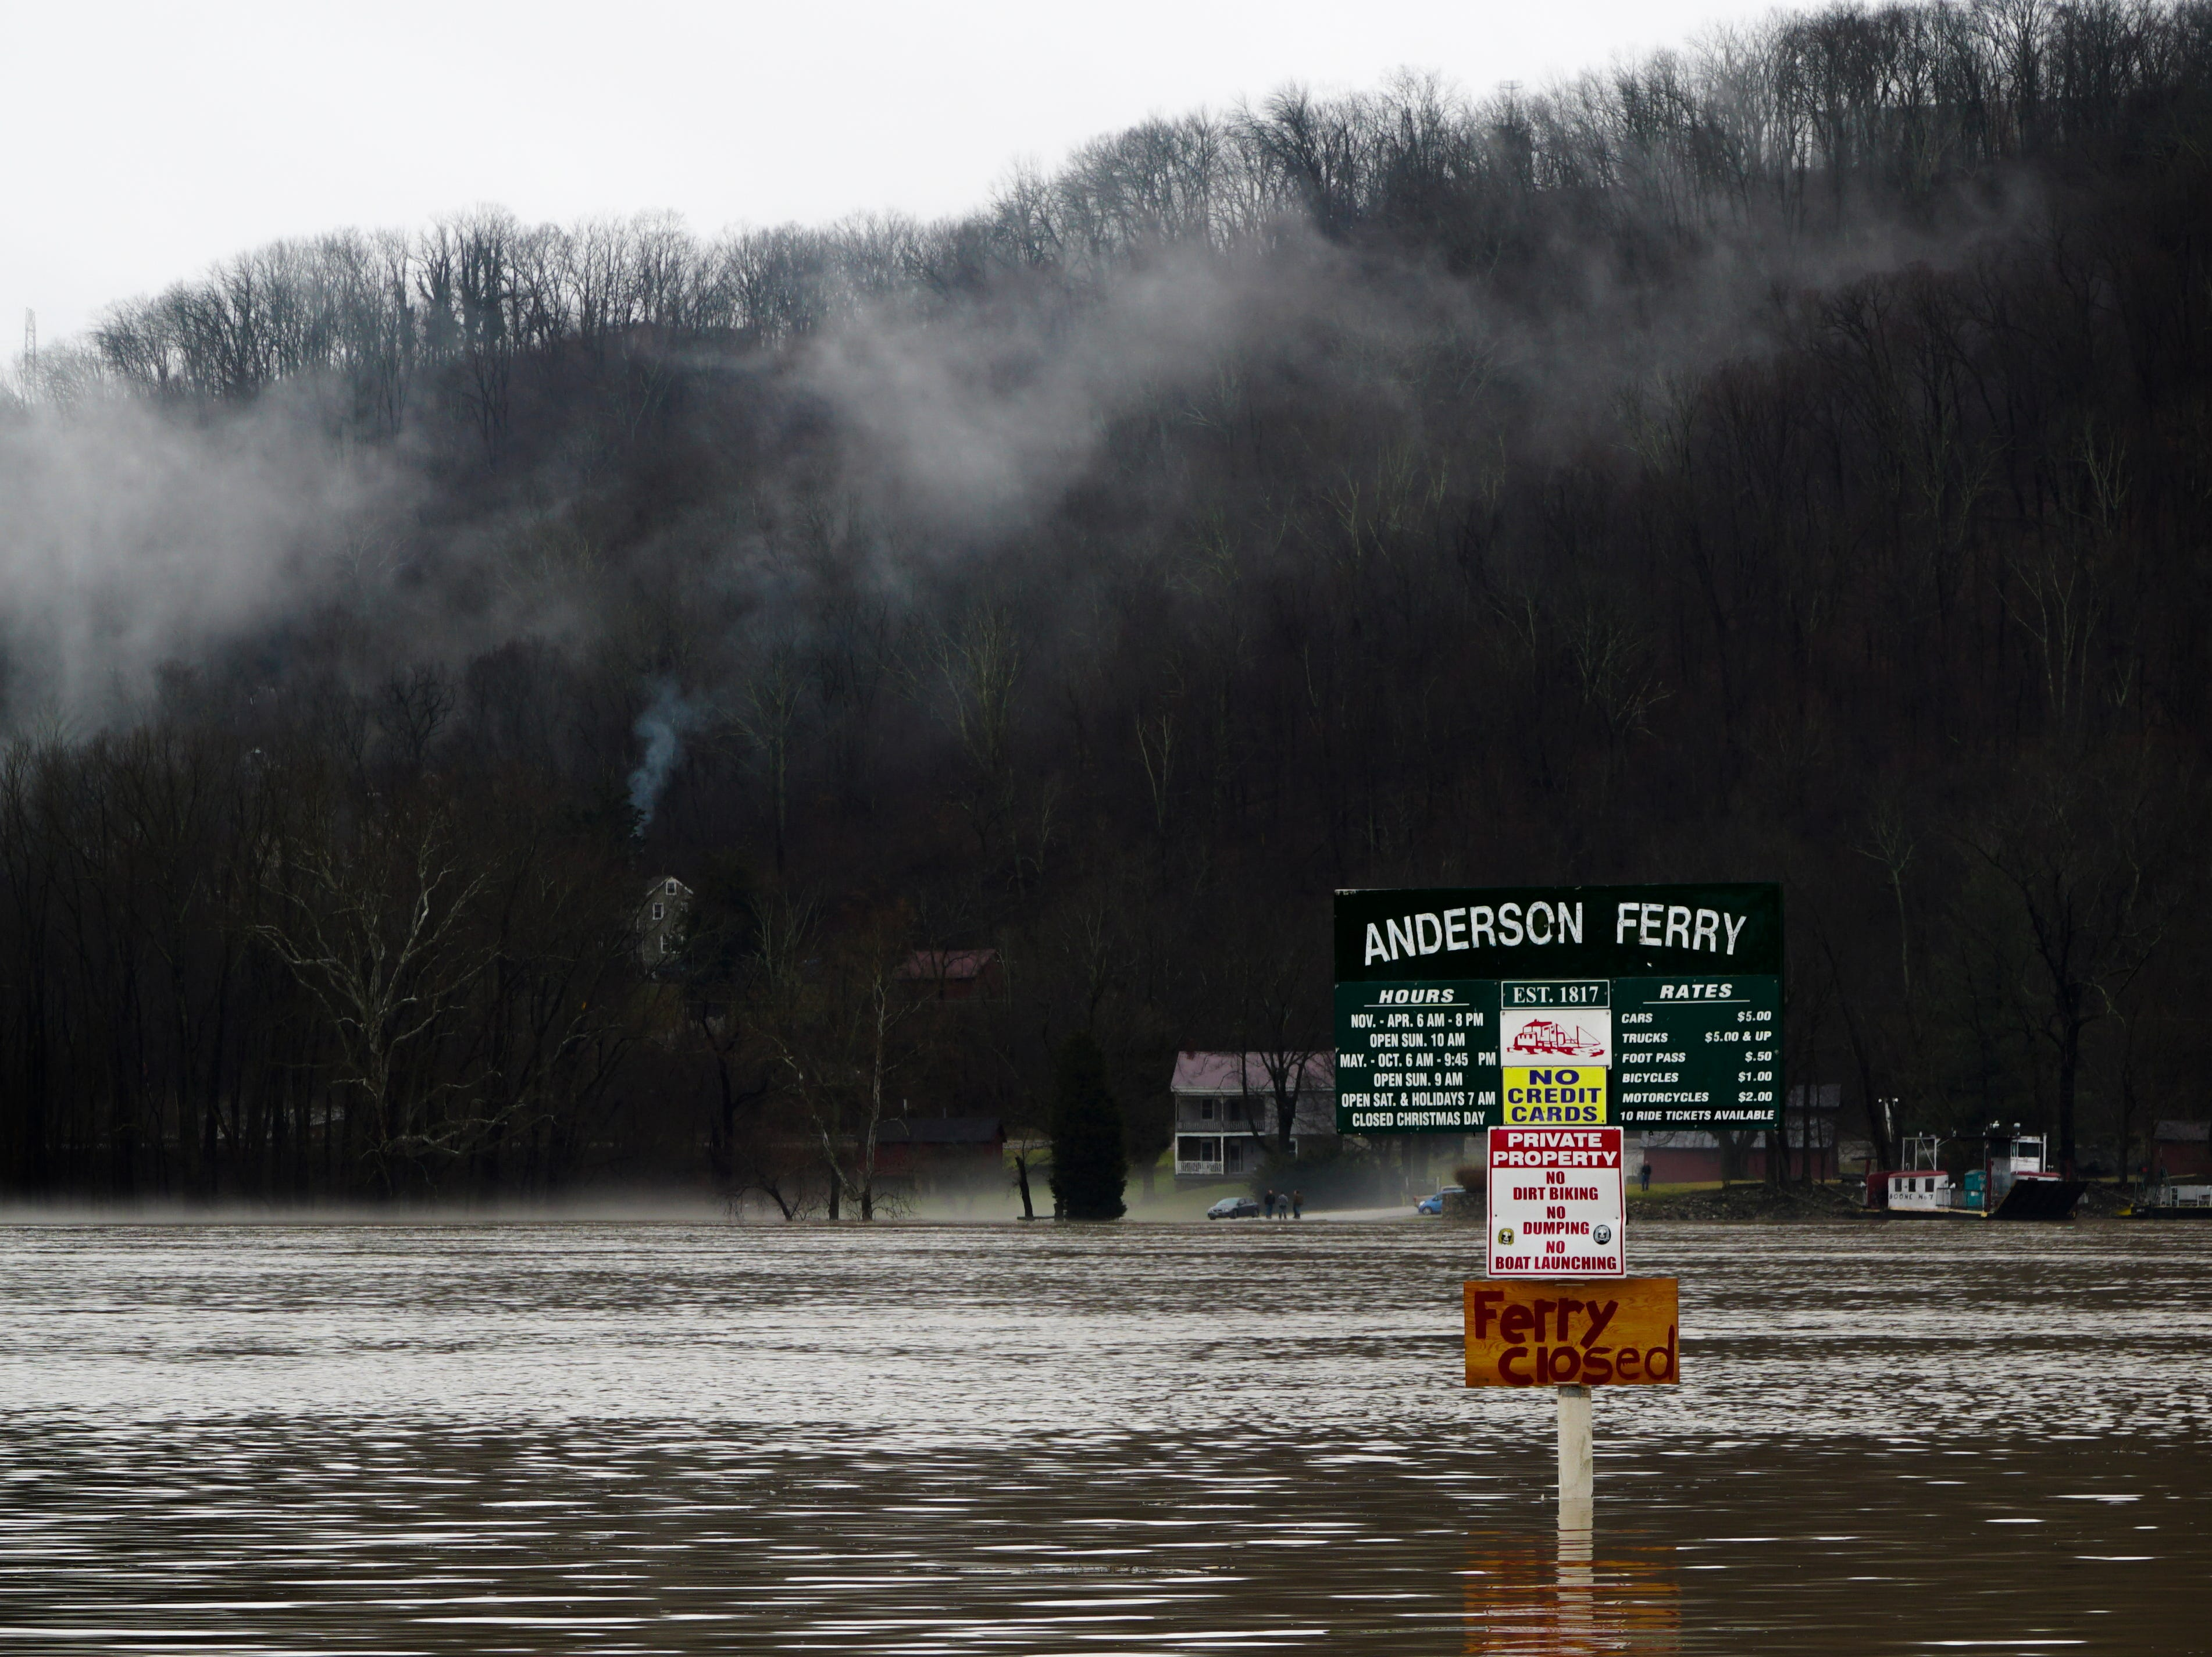 The Anderson Ferry, which has operated on the Ohio river for over 200 years, was closed due to high waters, Saturday, Feb. 12, 2019.